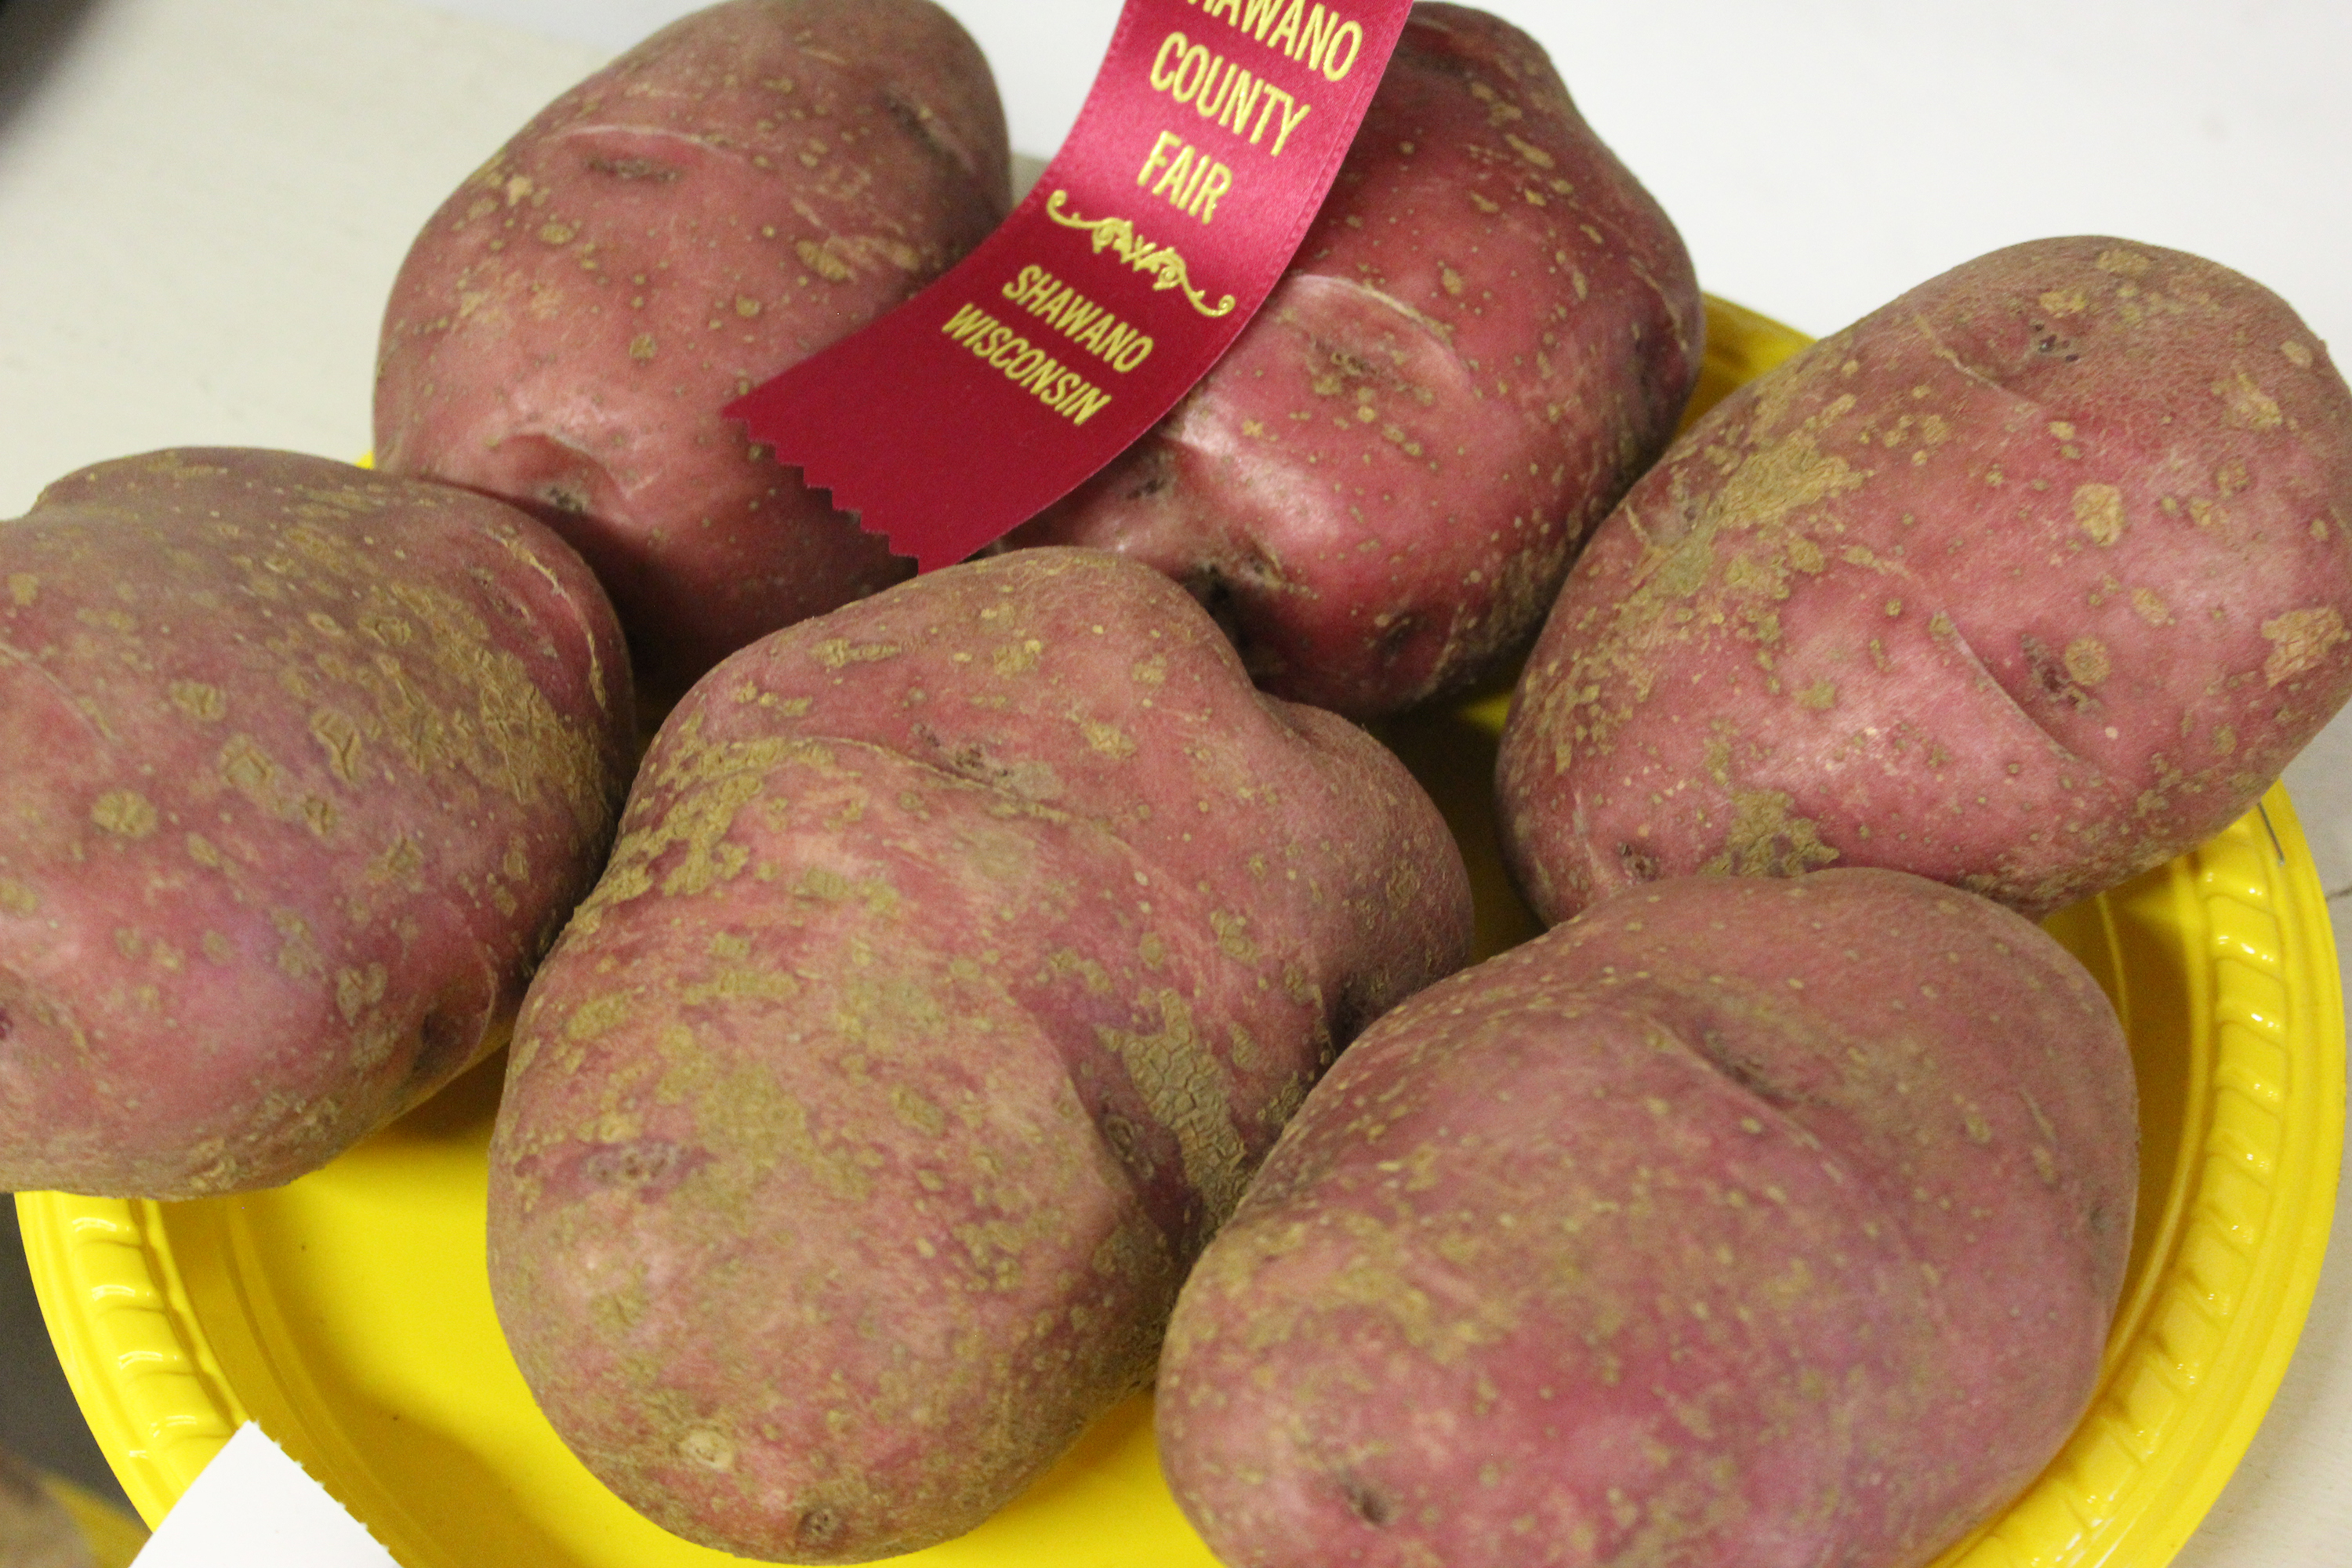 A half-dozen red potatoes sit on a plate displayed for all to see at the Shawano County Fair.<br />(Lee Pulaski   NEW Media)